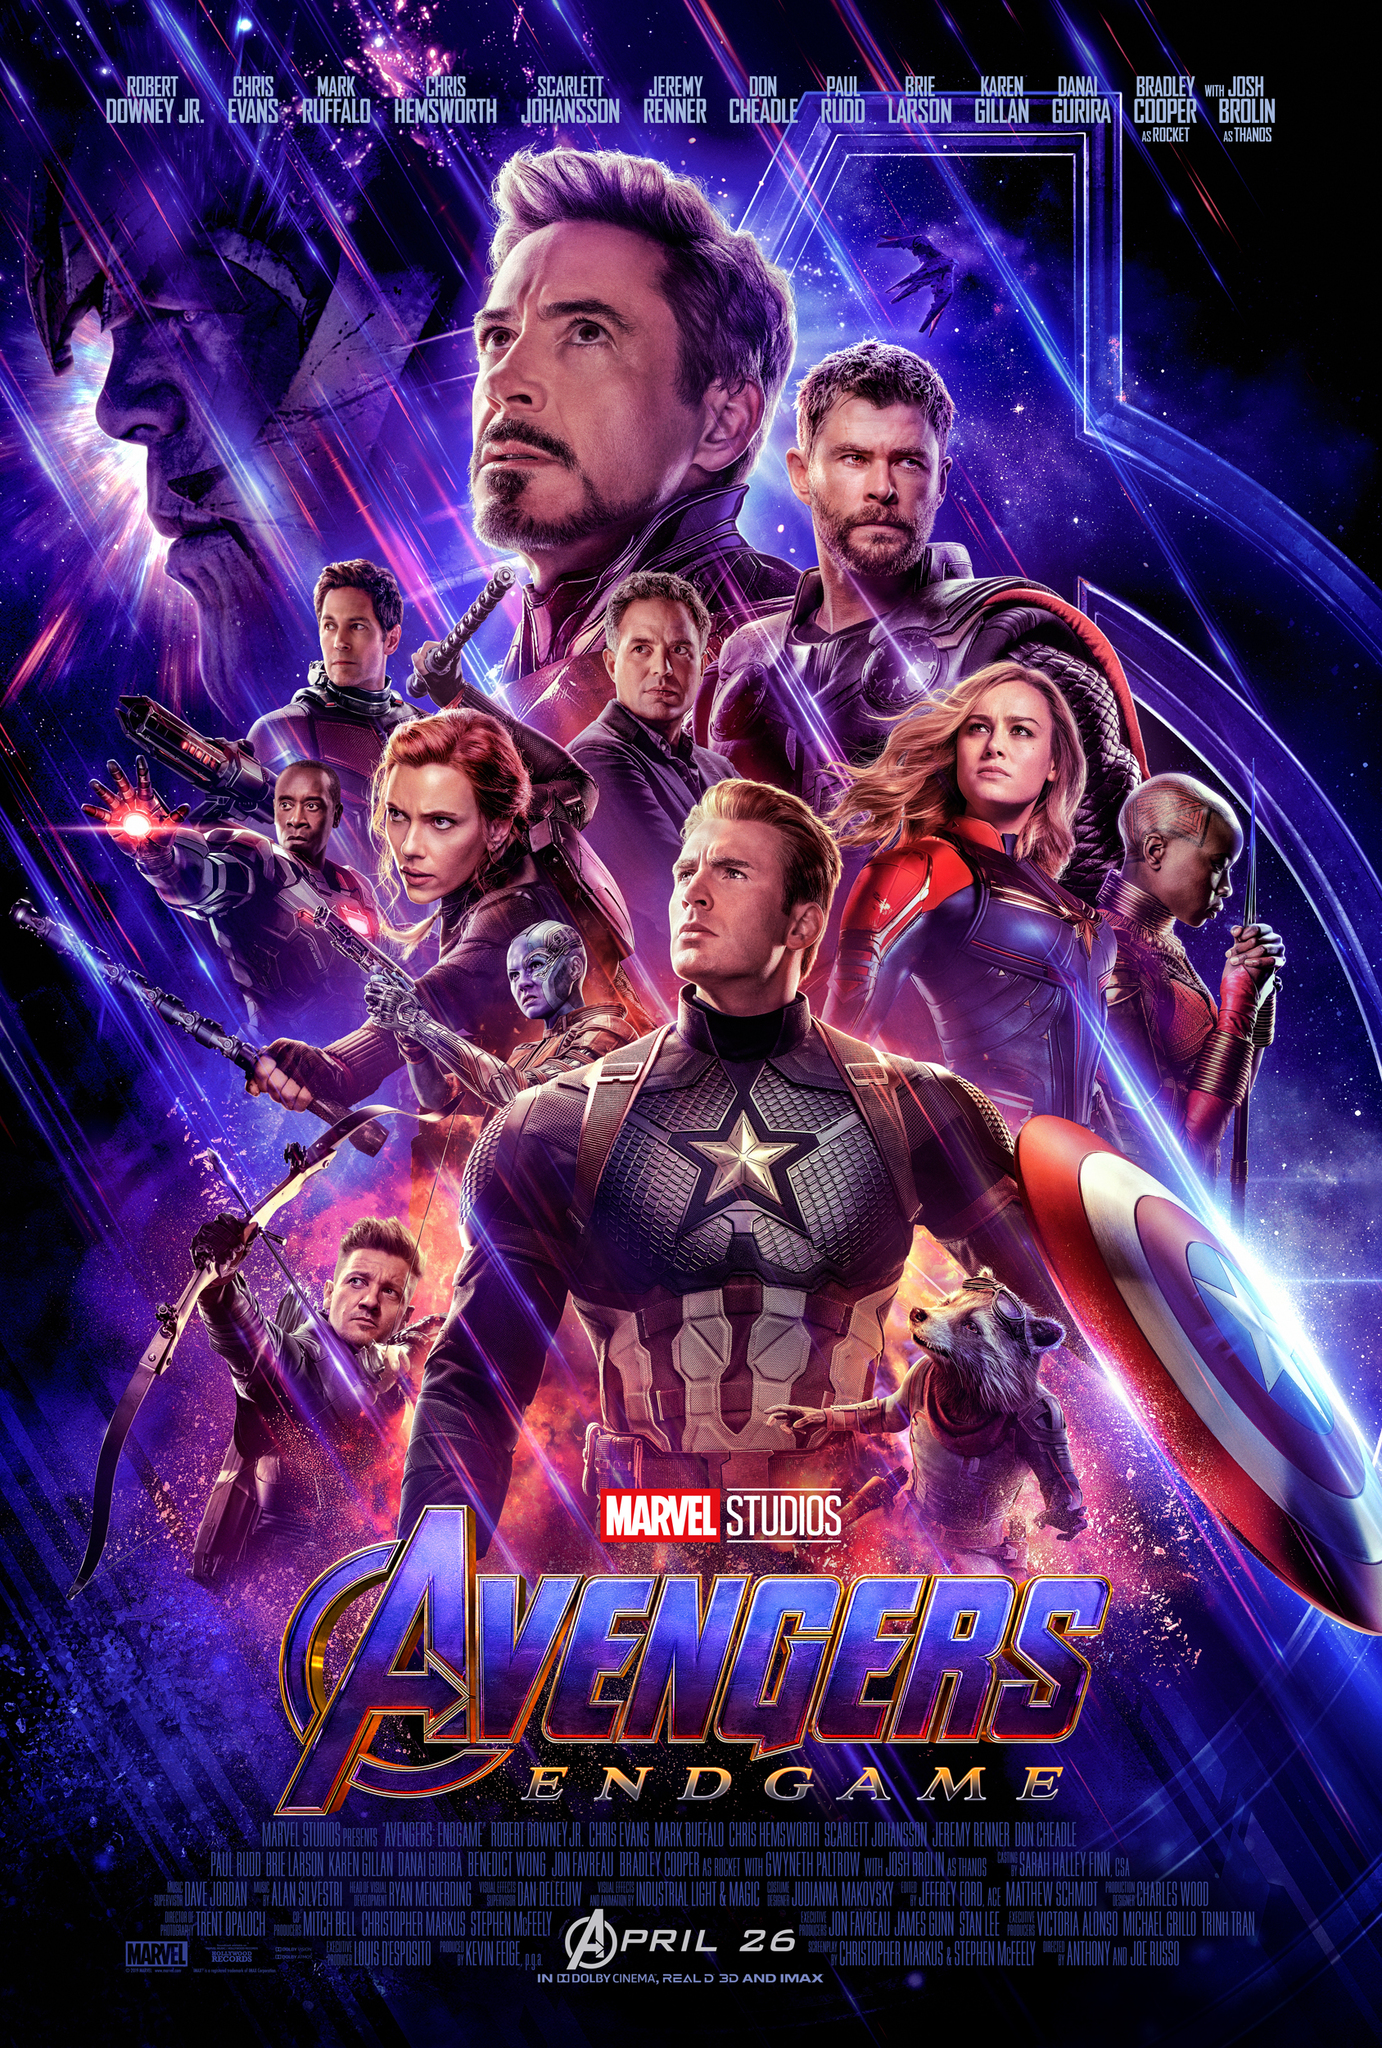 Endgame movie poster Avengers 4